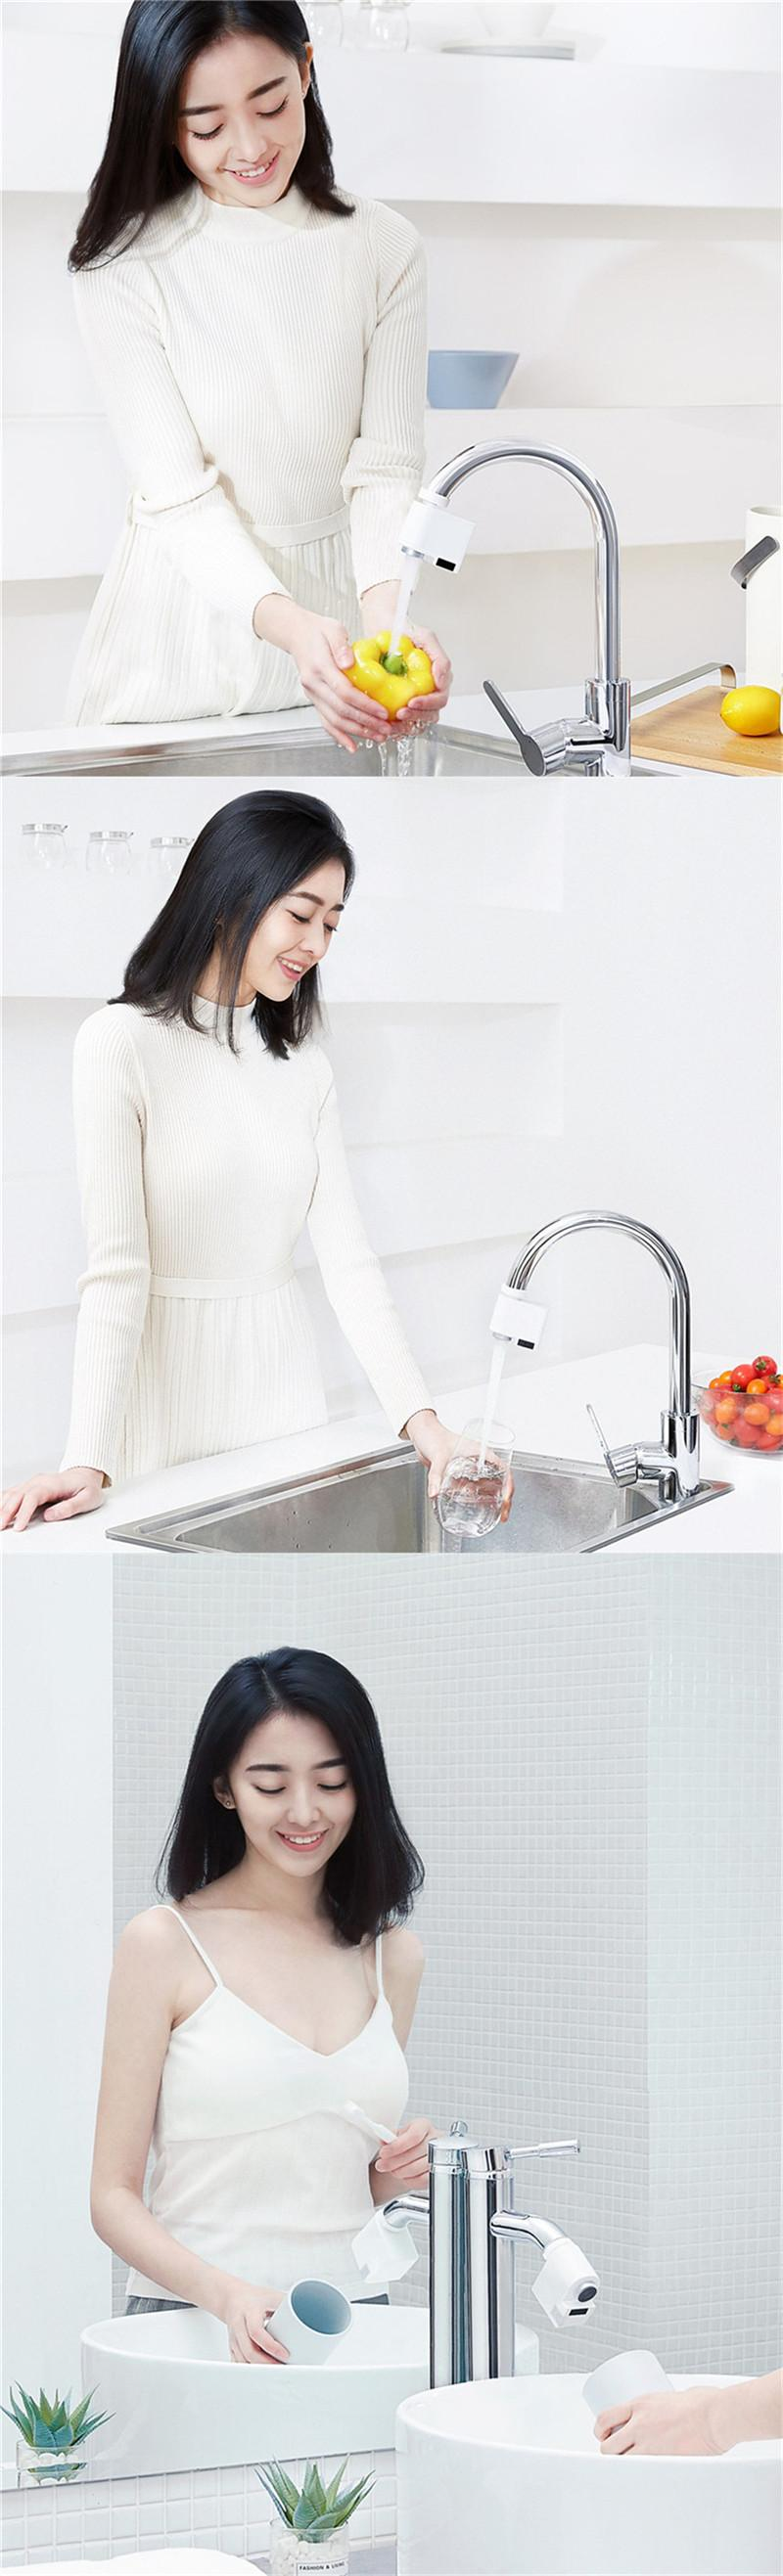 Xiaomi Mijia Touchless Water Saving Device with Automatic Sense Fits most faucets